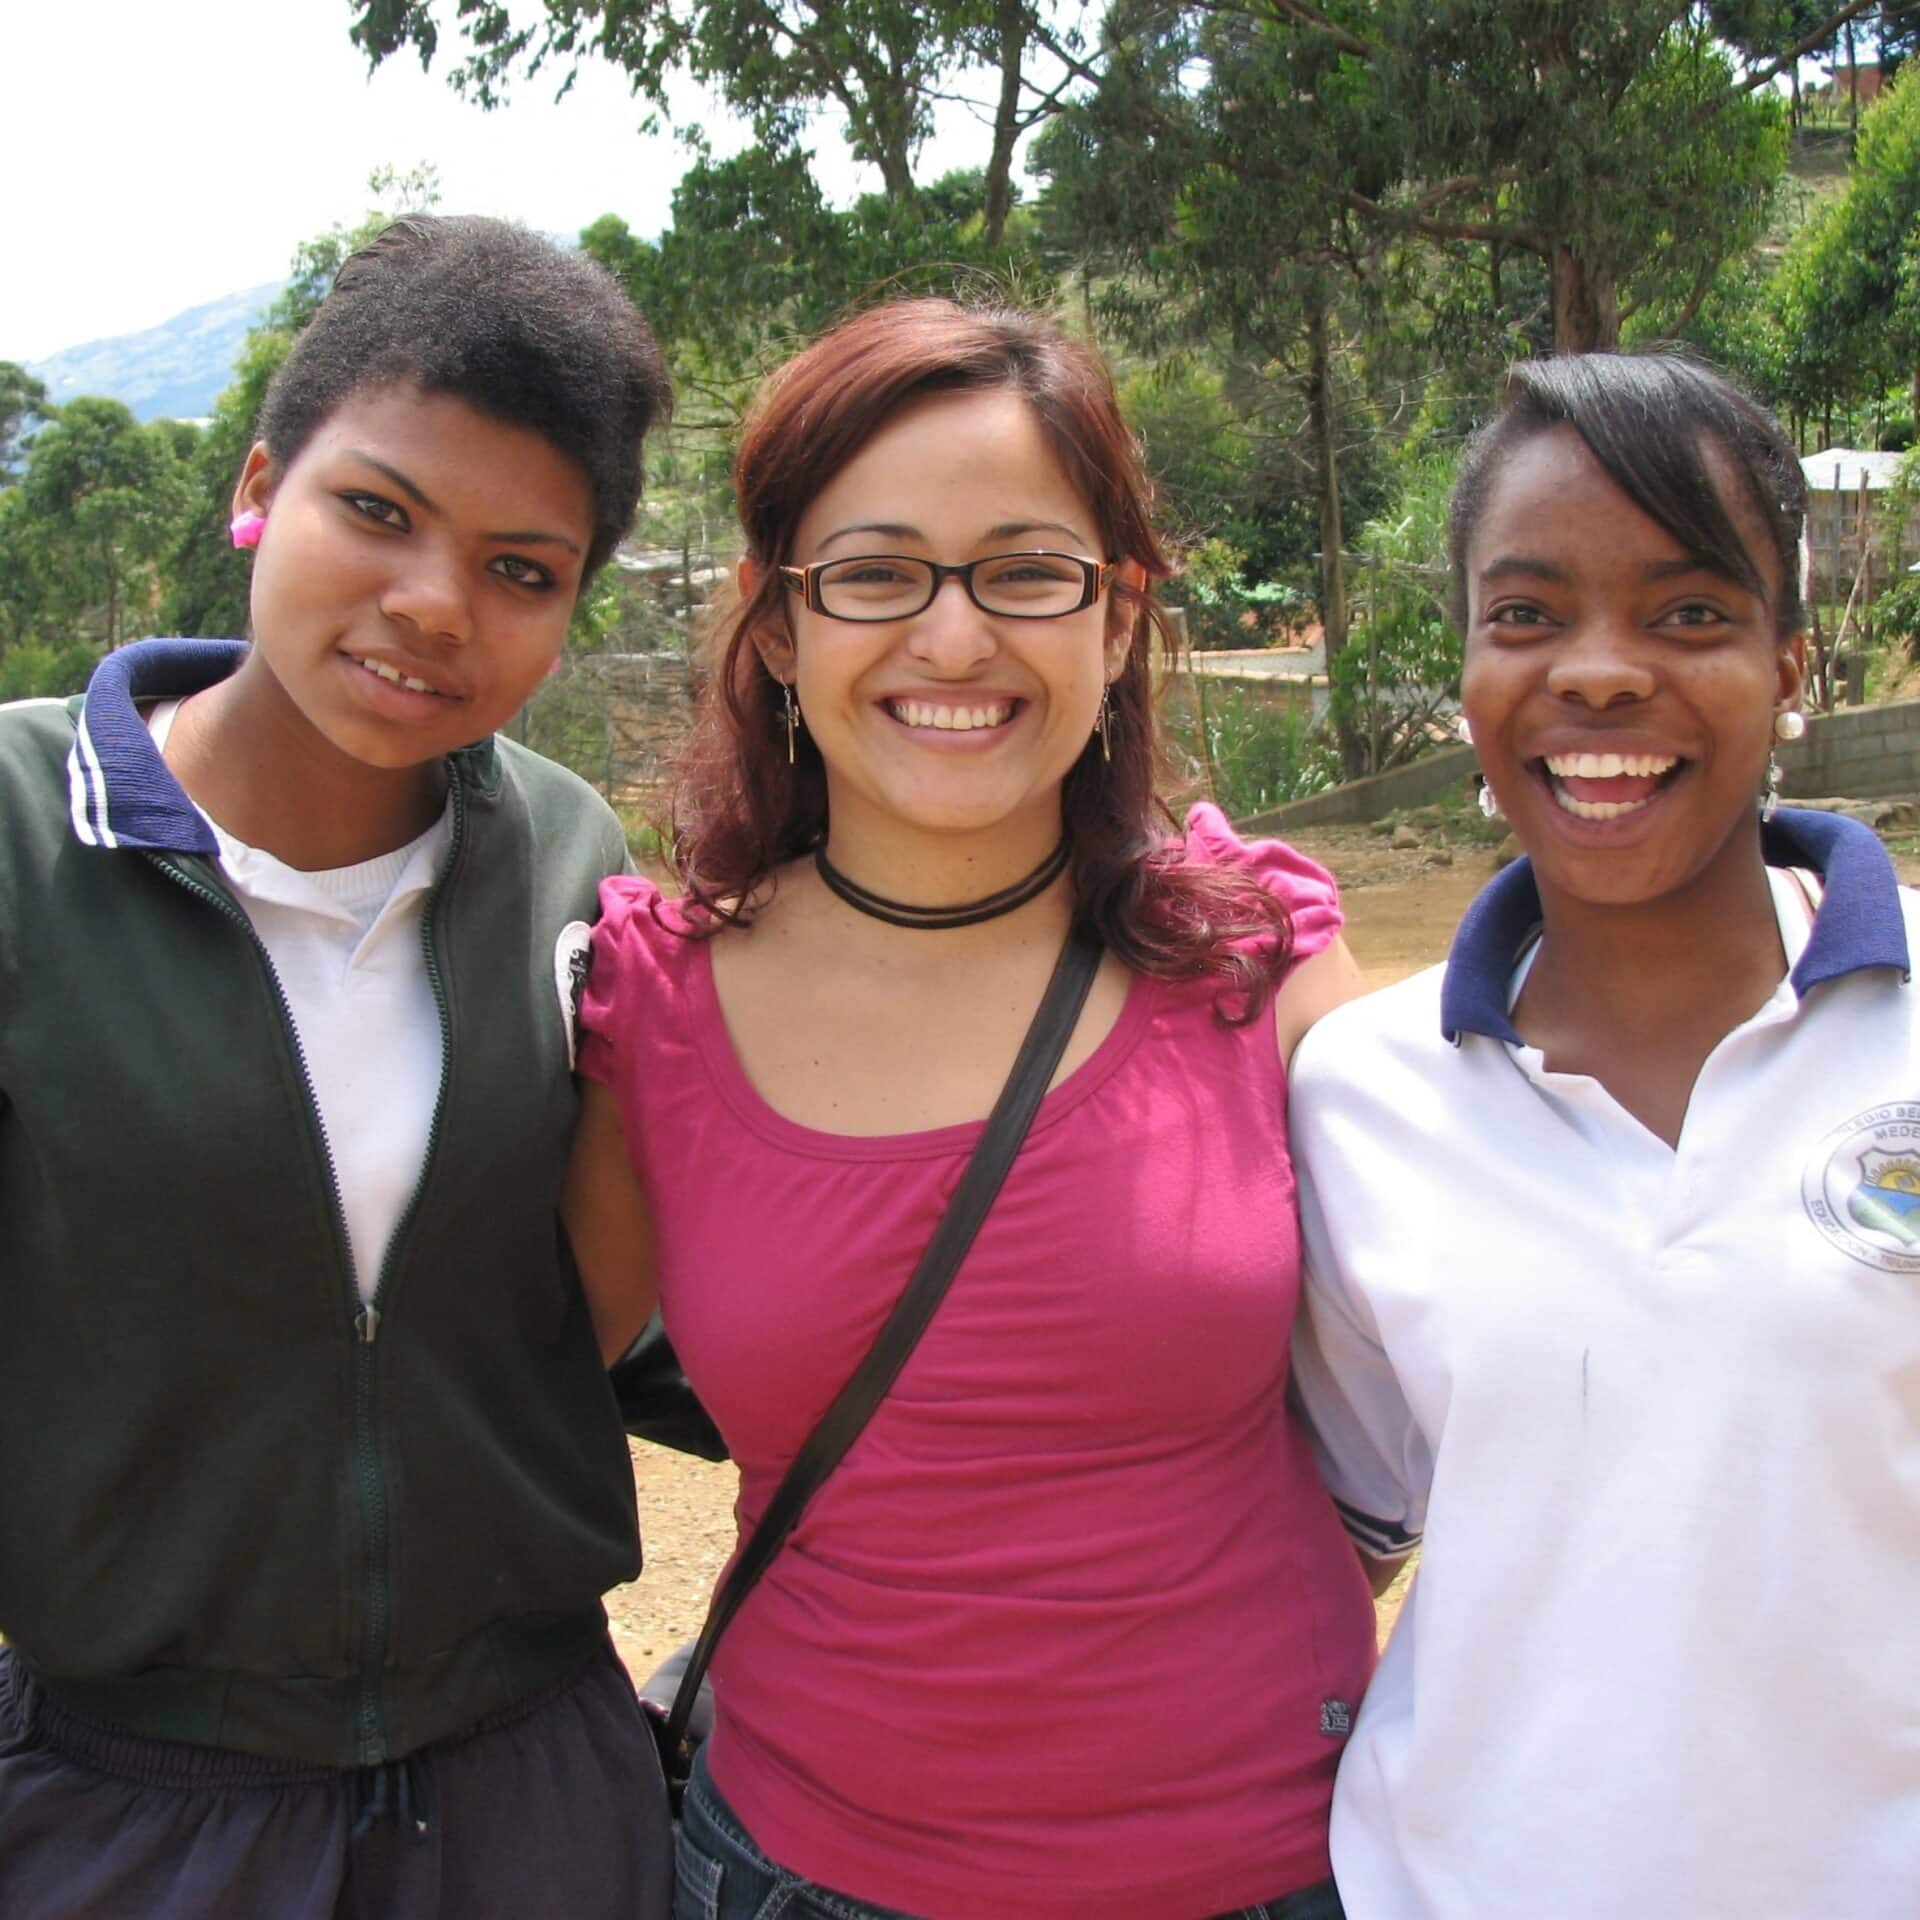 Three young women from Antioquia, Colombia stand arm in arm smiling.